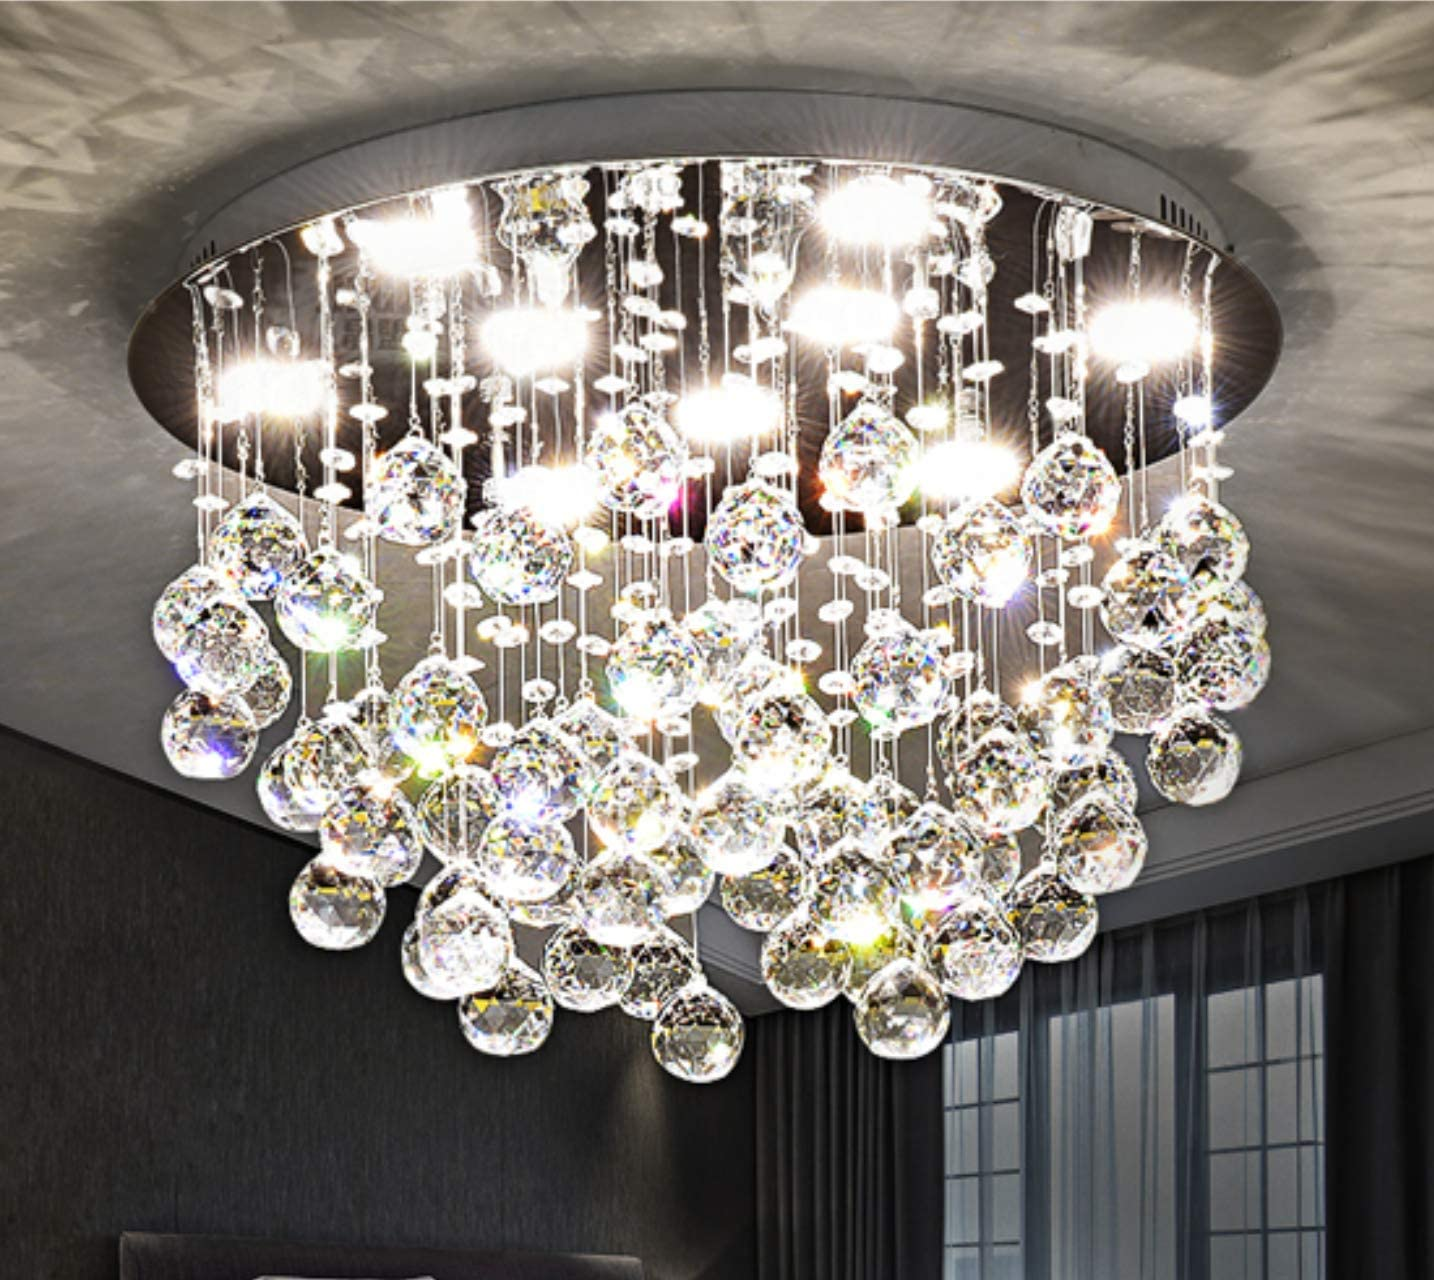 Saint Mossi Modern K9 Crystal Chandelier Lighting Flush Mount LED Ceiling Light Fixture Pendant Chandelier for Livingroom 9 GU10 Bulbs Required Width 20 inch x Height 13 inch